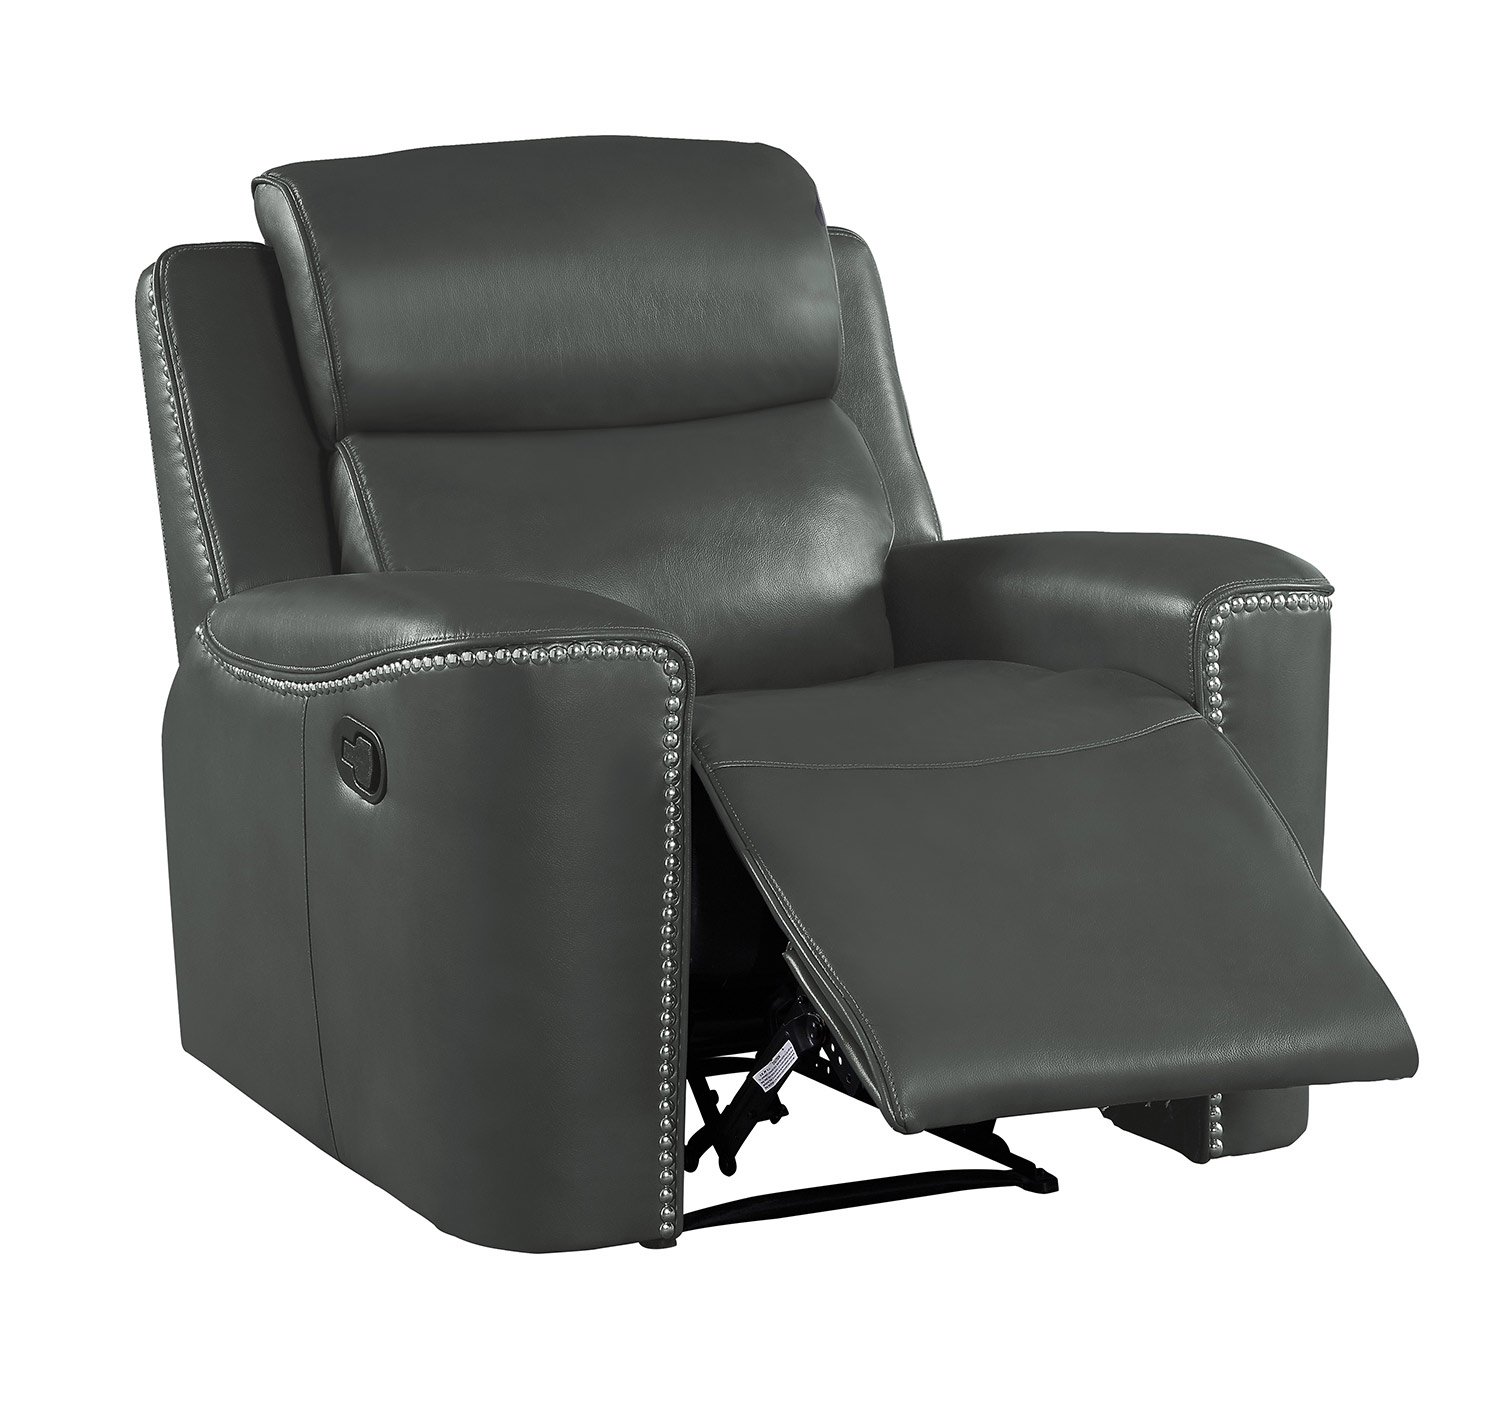 Homelegance Altair Reclining Chair - Gray